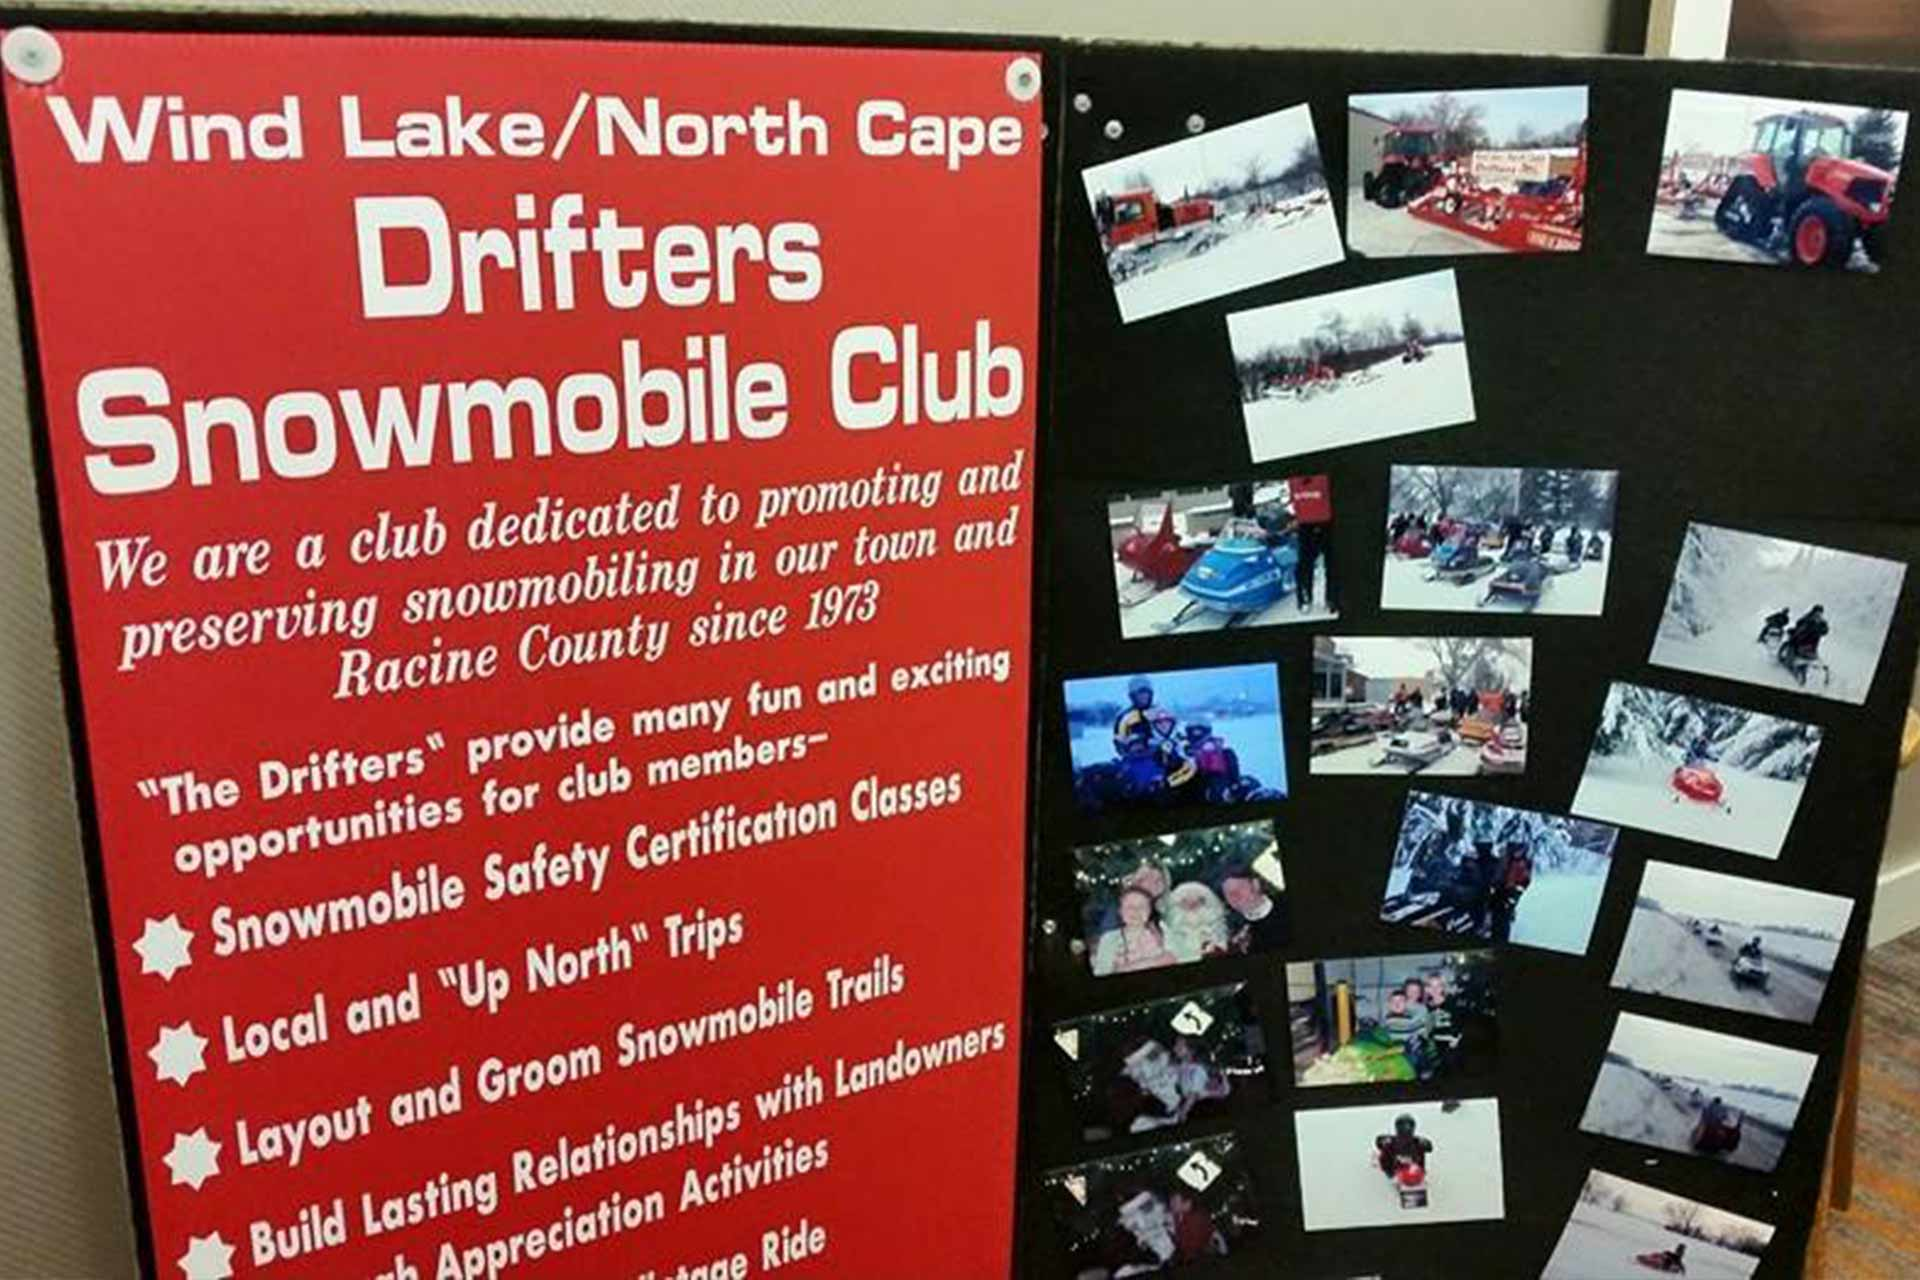 Wind Lake North Cape Drifters Snowmobile Club